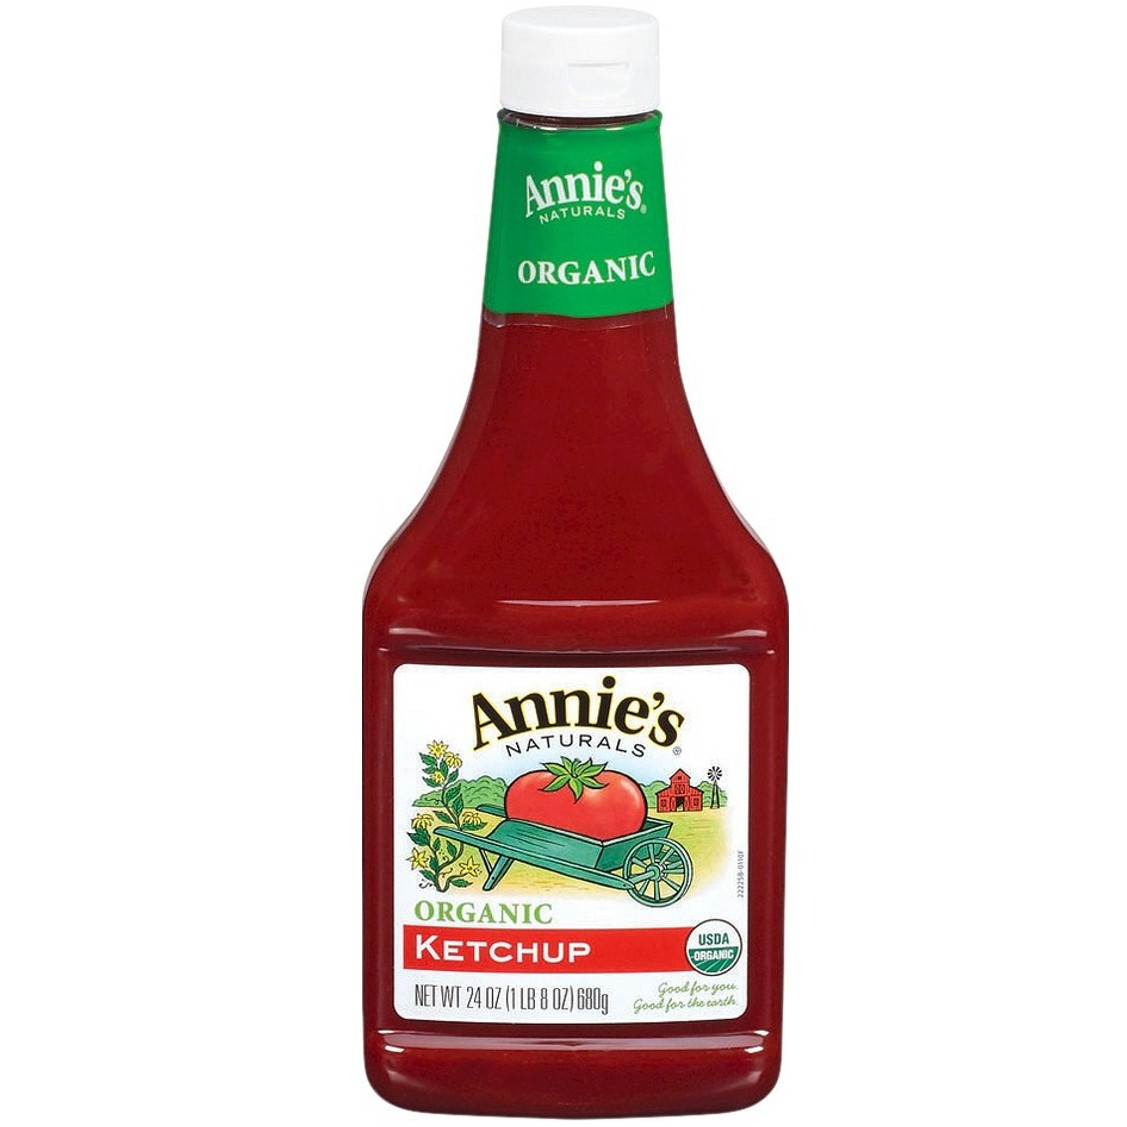 Annie's Naturals Tomato Ketchup (Organic), 680g